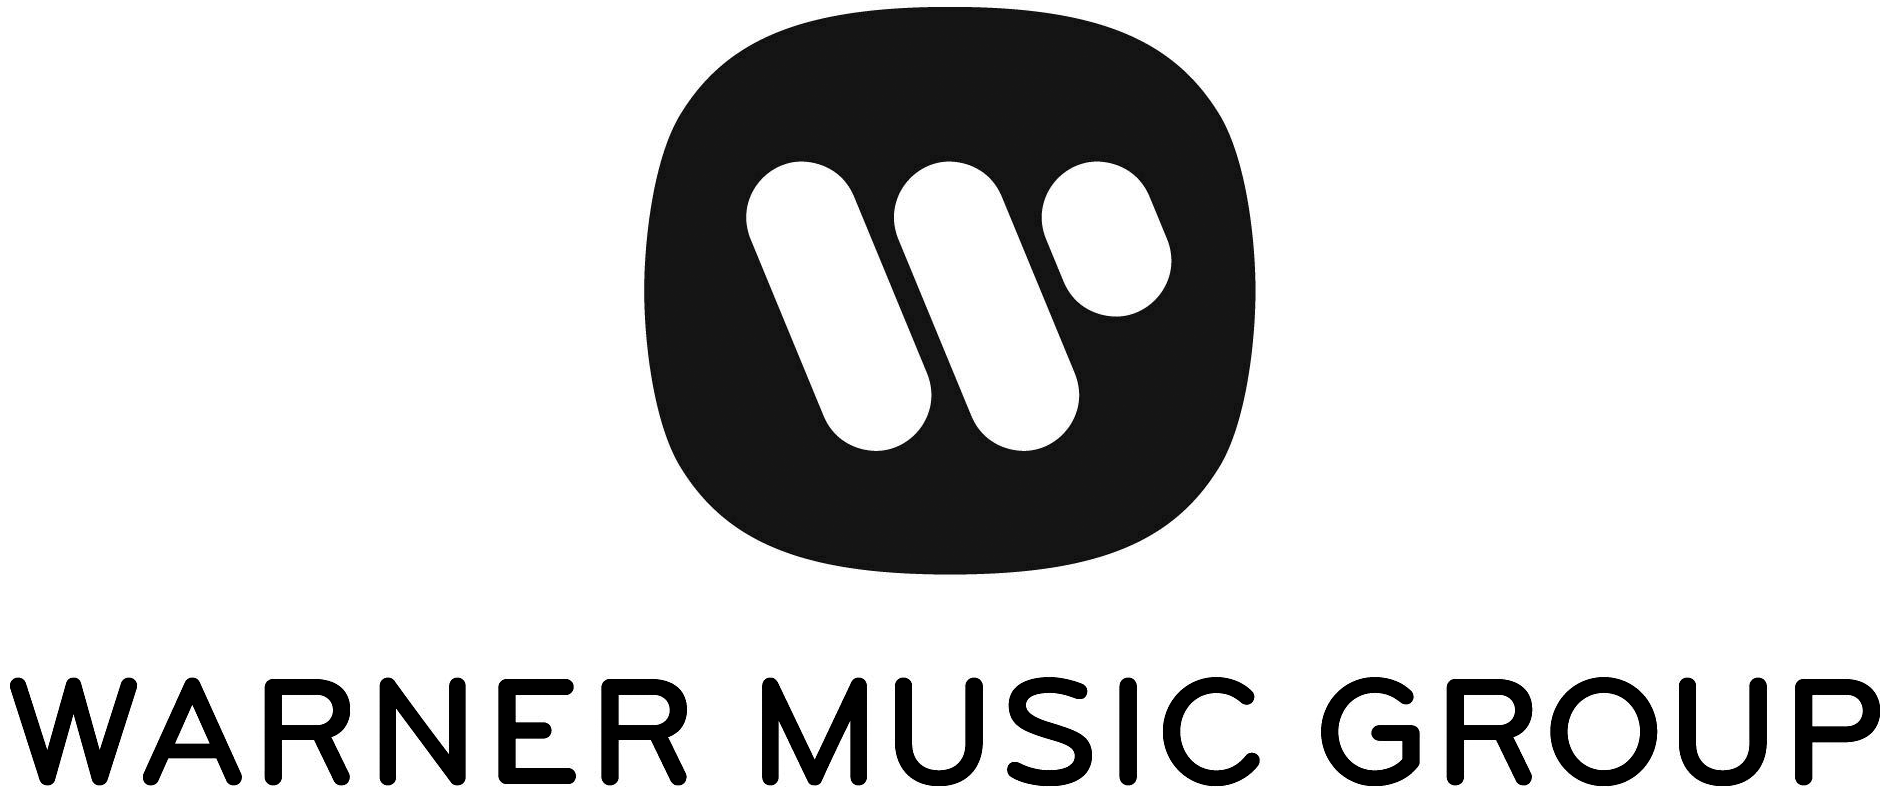 Silent Disco - Warner Music